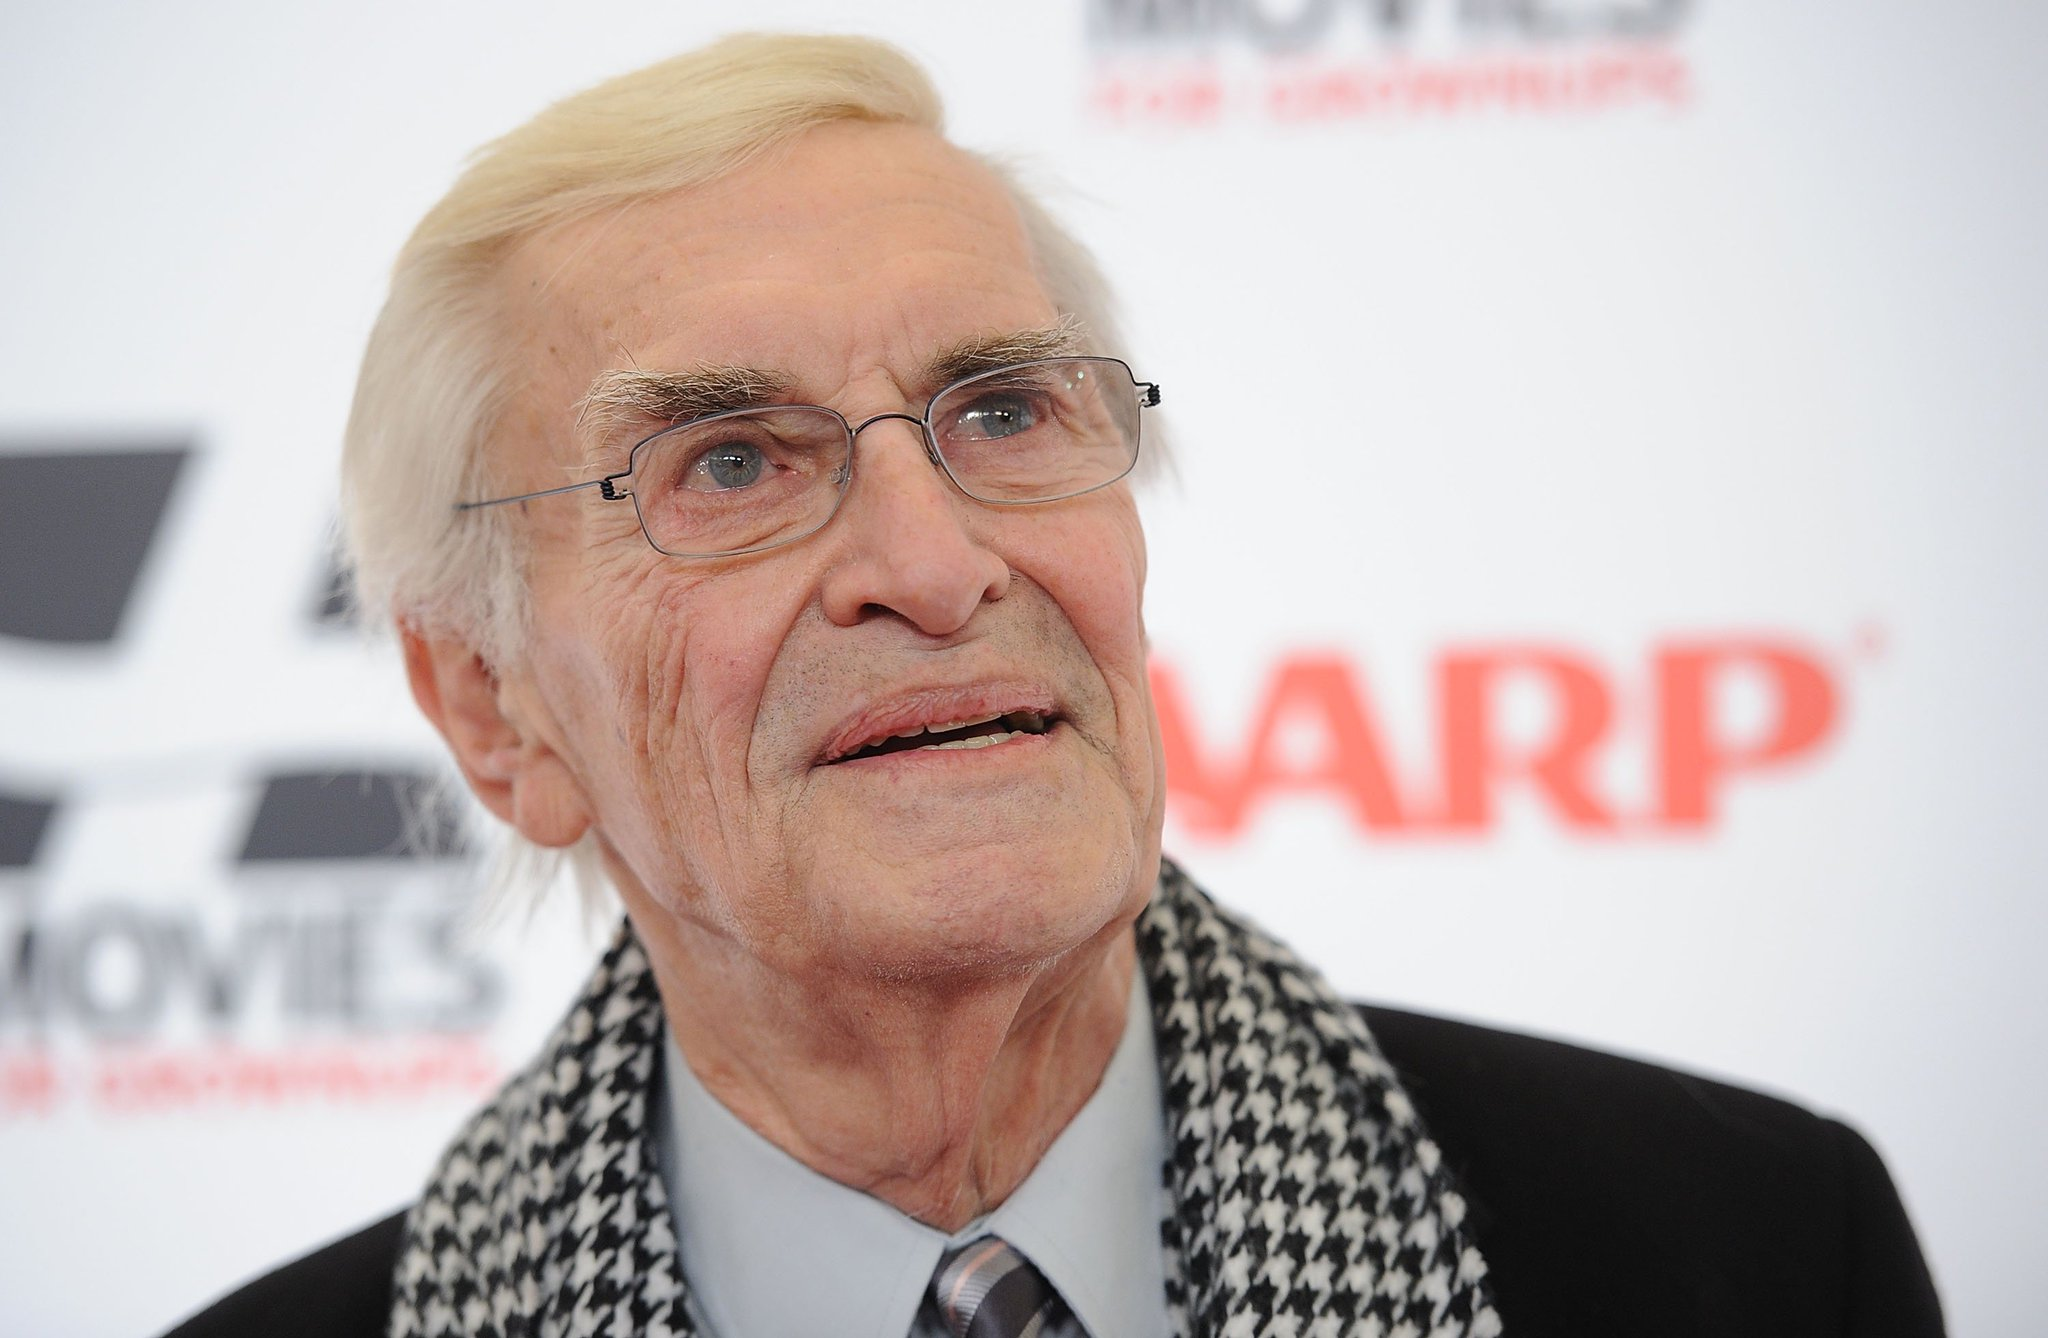 Martin Landau has died at the age of 89. https://t.co/TBn6ifVbnQ https://t.co/DaYKCWqFGI